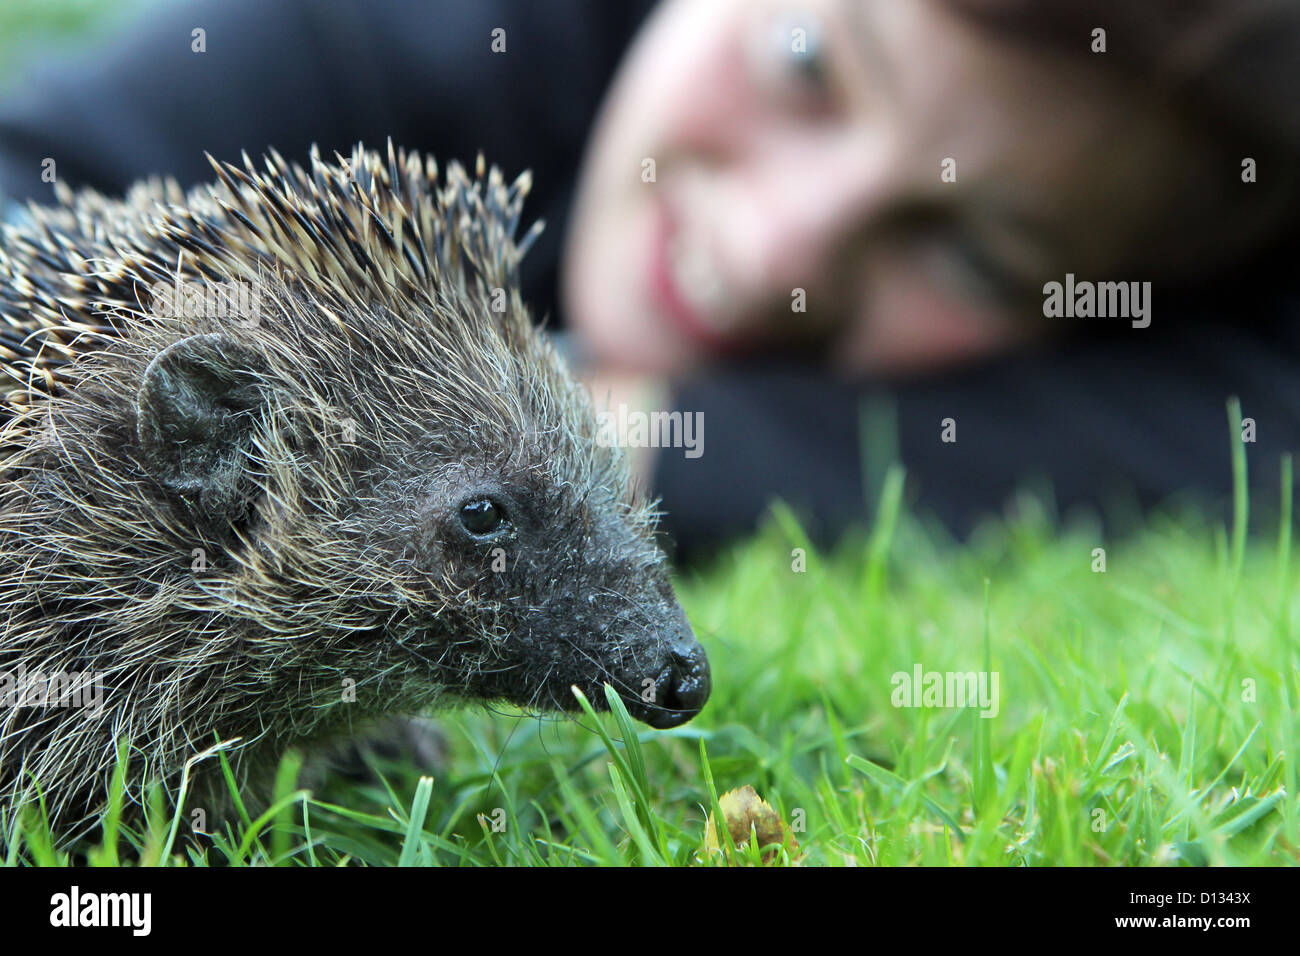 Wees. Germany, woman and hedgehog on a lawn - Stock Image